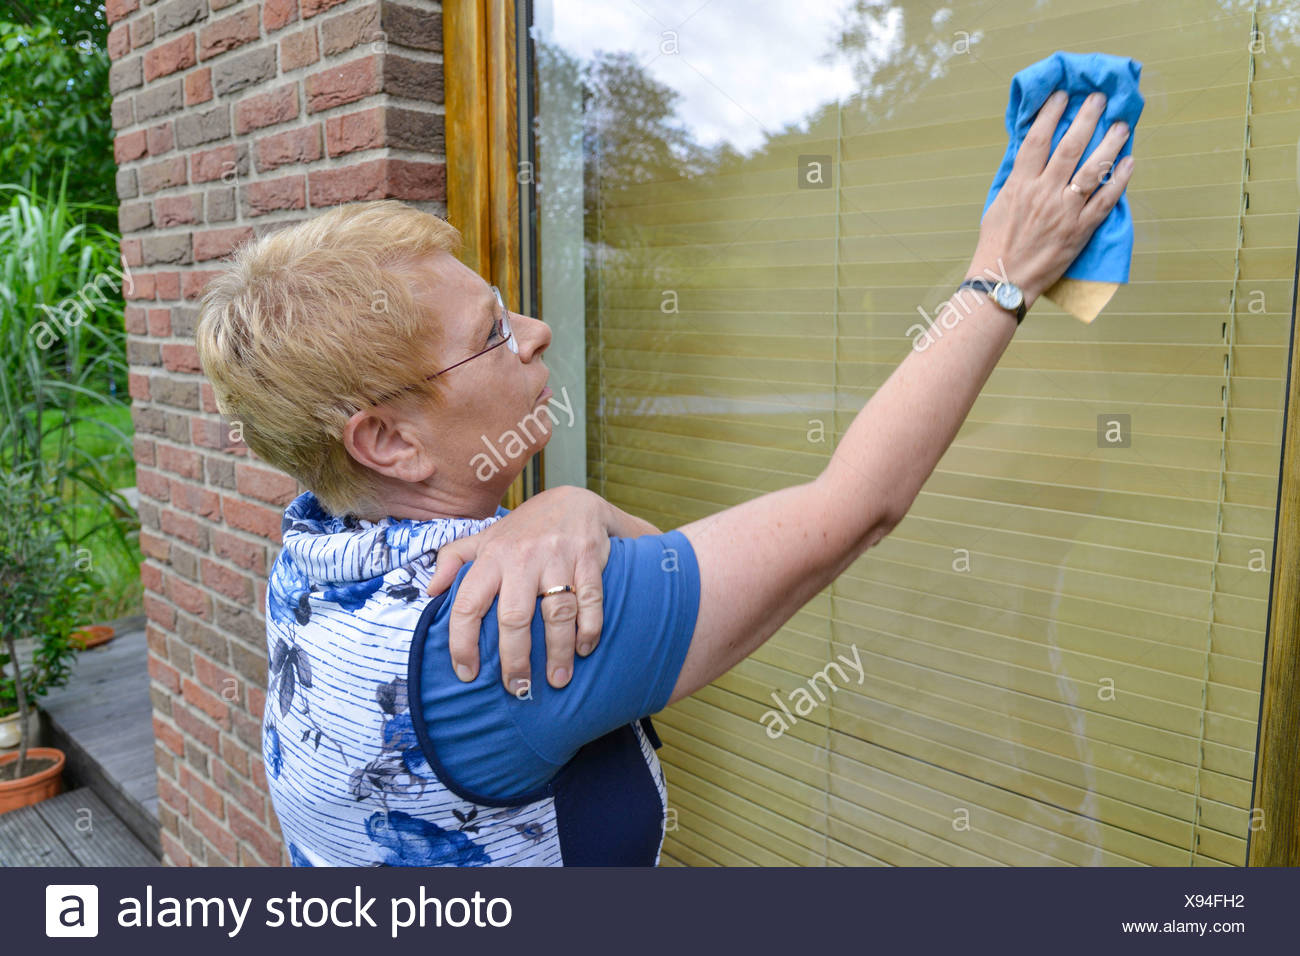 Woman with joint pain in her shoulder cleaning a window - Stock Image